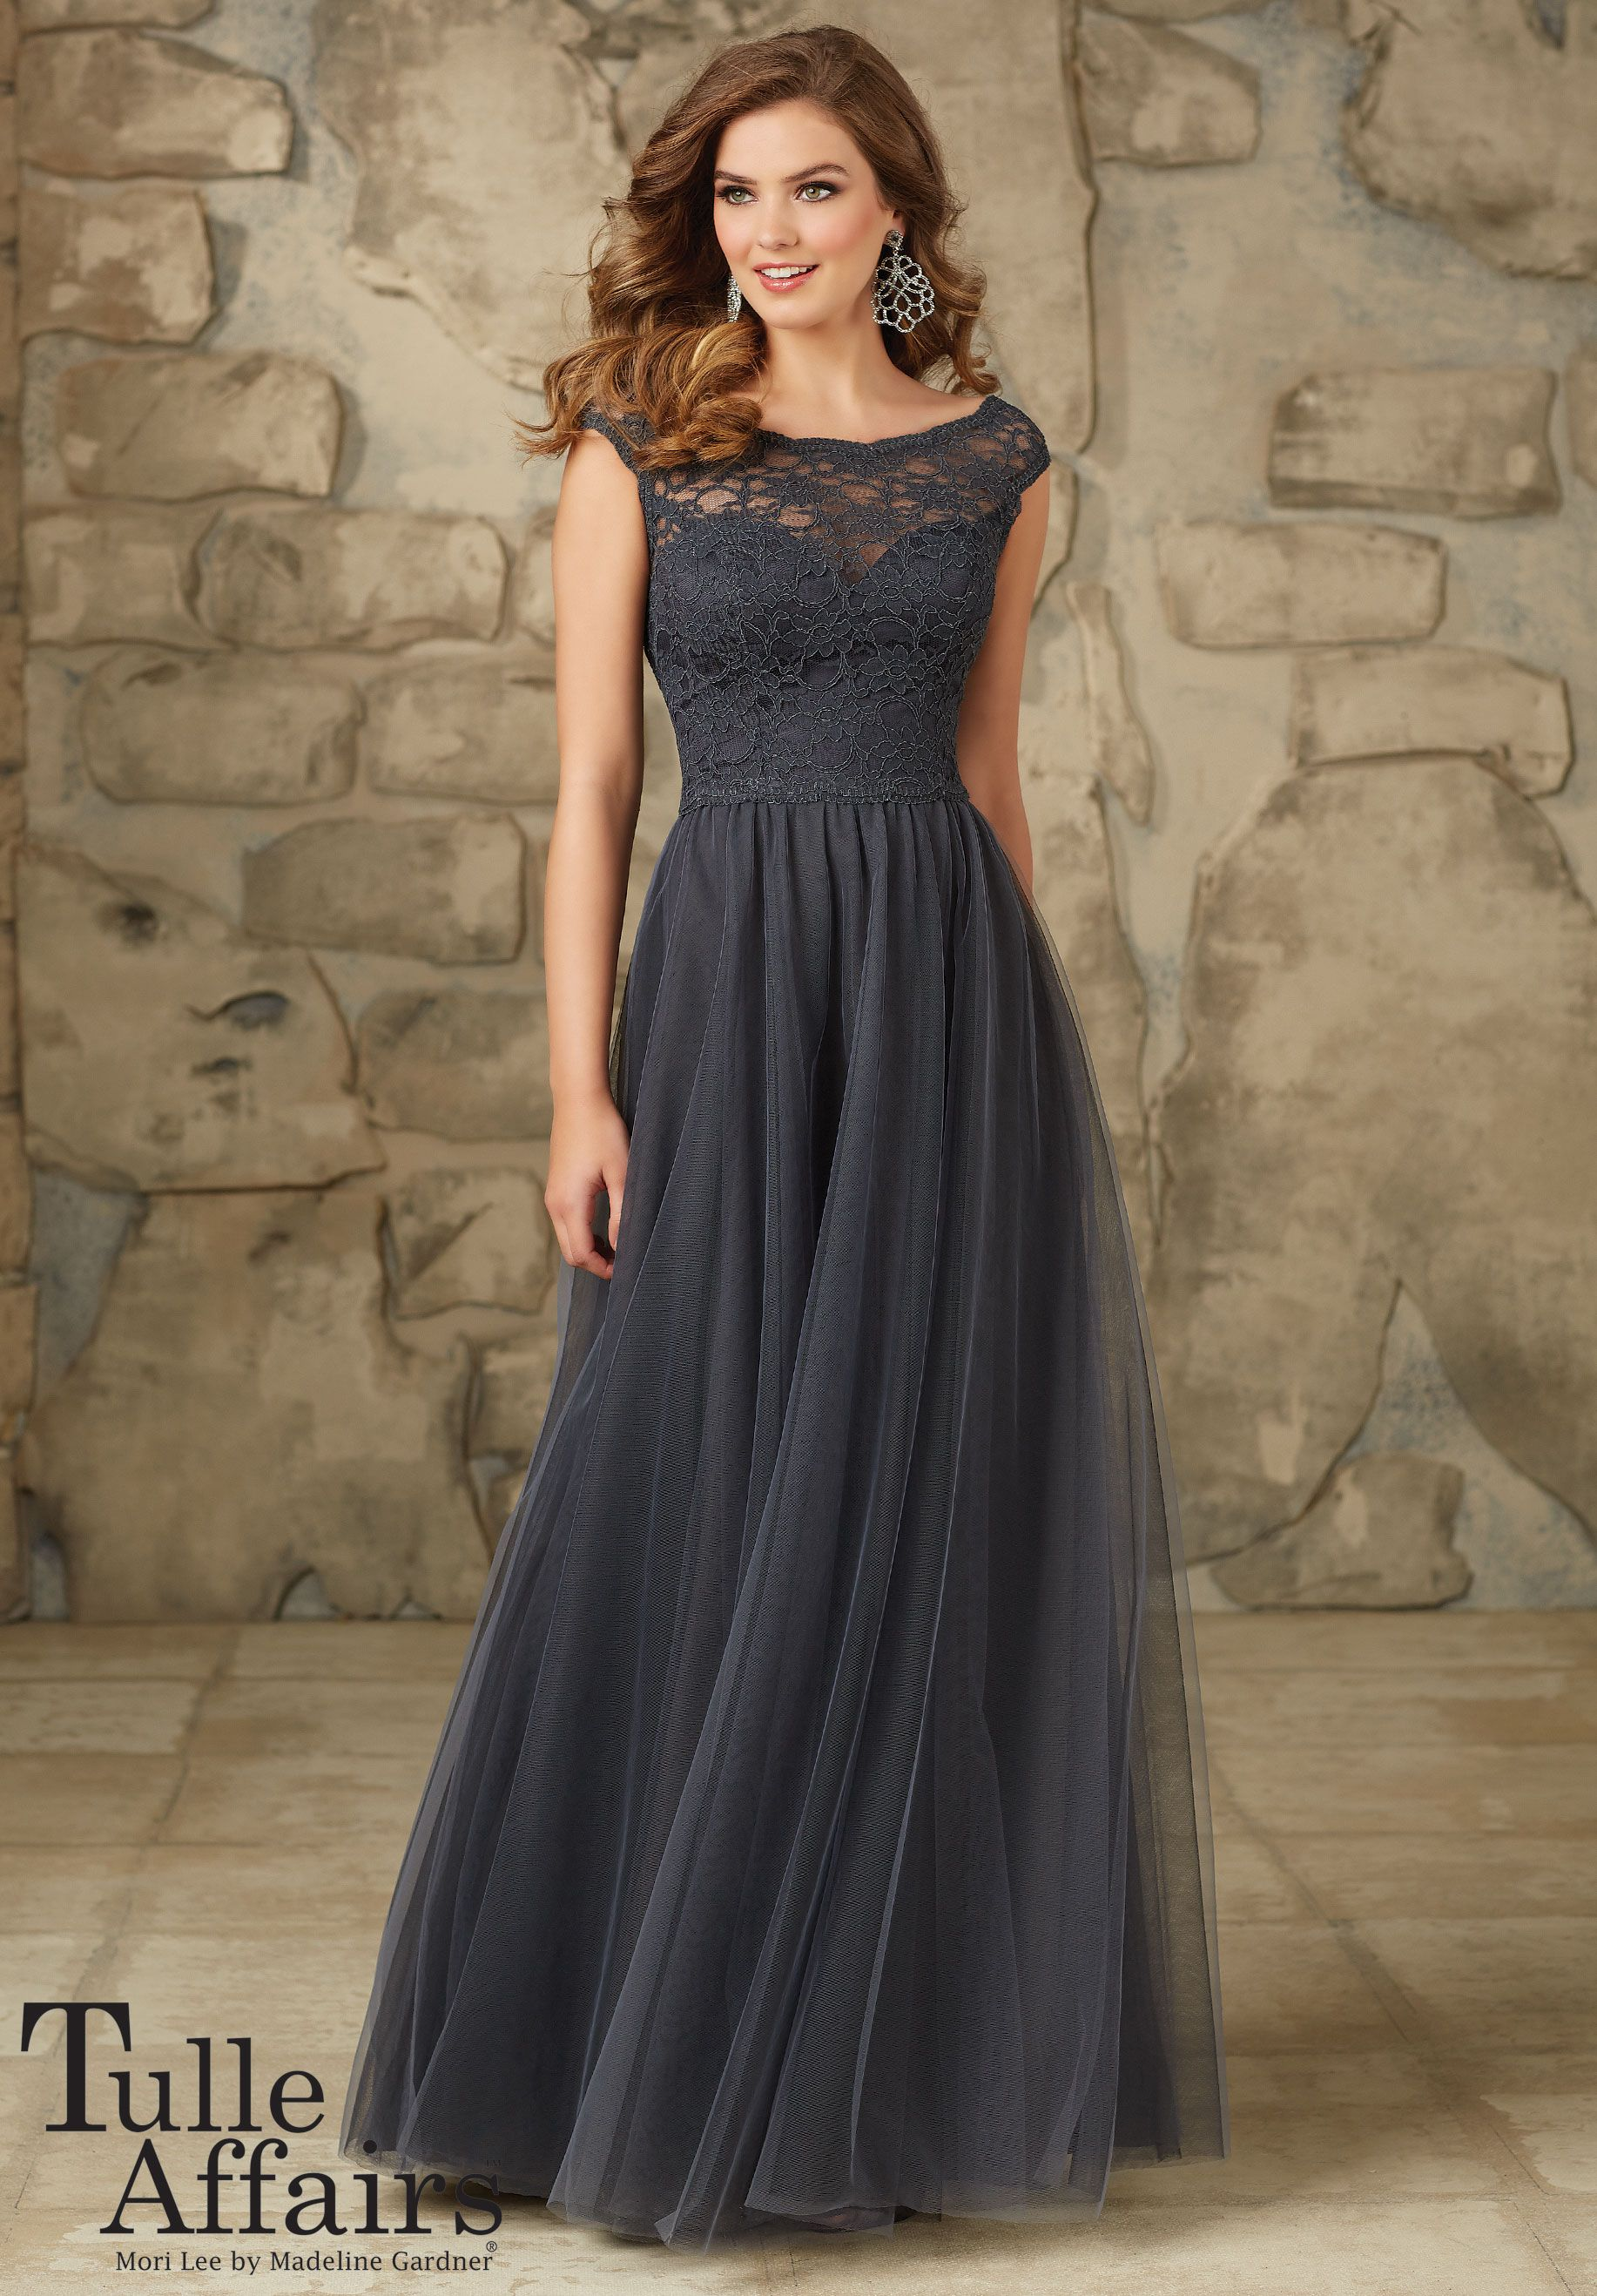 111 Bridesmaids Dresses Lace and Tulle- This is Morilee dress They have an  ok lilac color but its a little paler purple and I d want to make sure  everyone ... 5dbdfb699da2